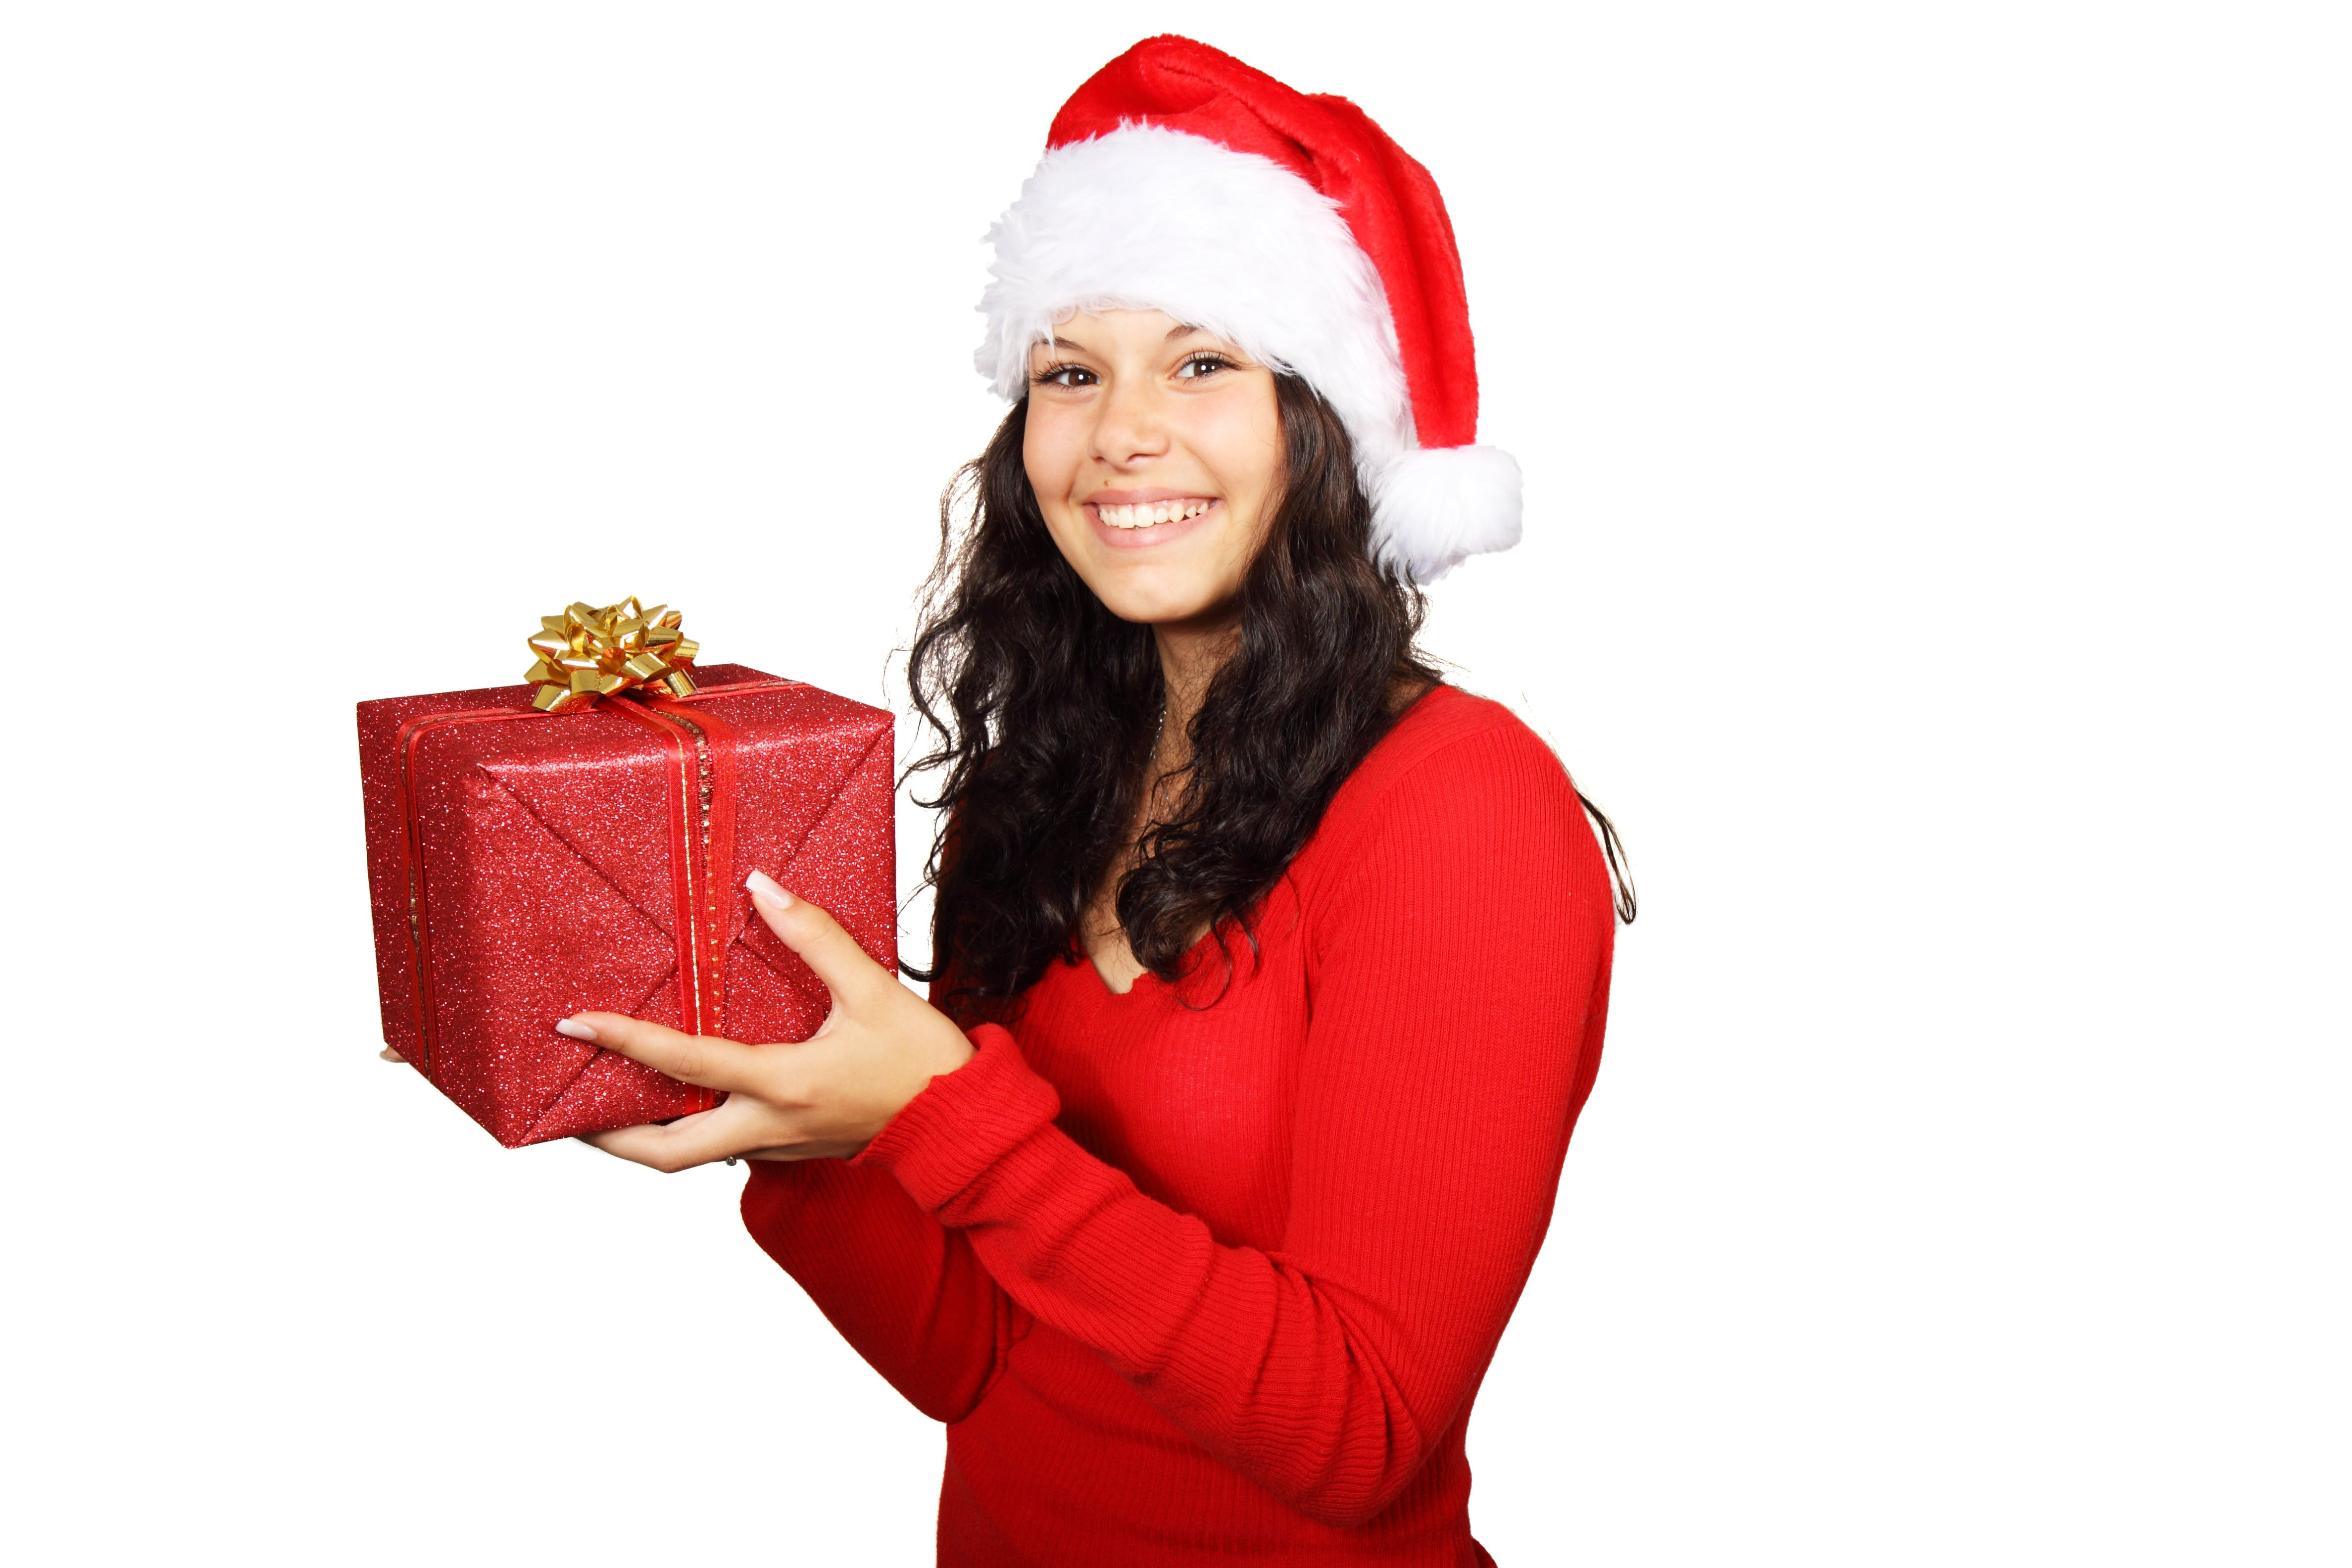 Smiling Woman in Red Long Sleeve Shirt Holding Red Gift Box